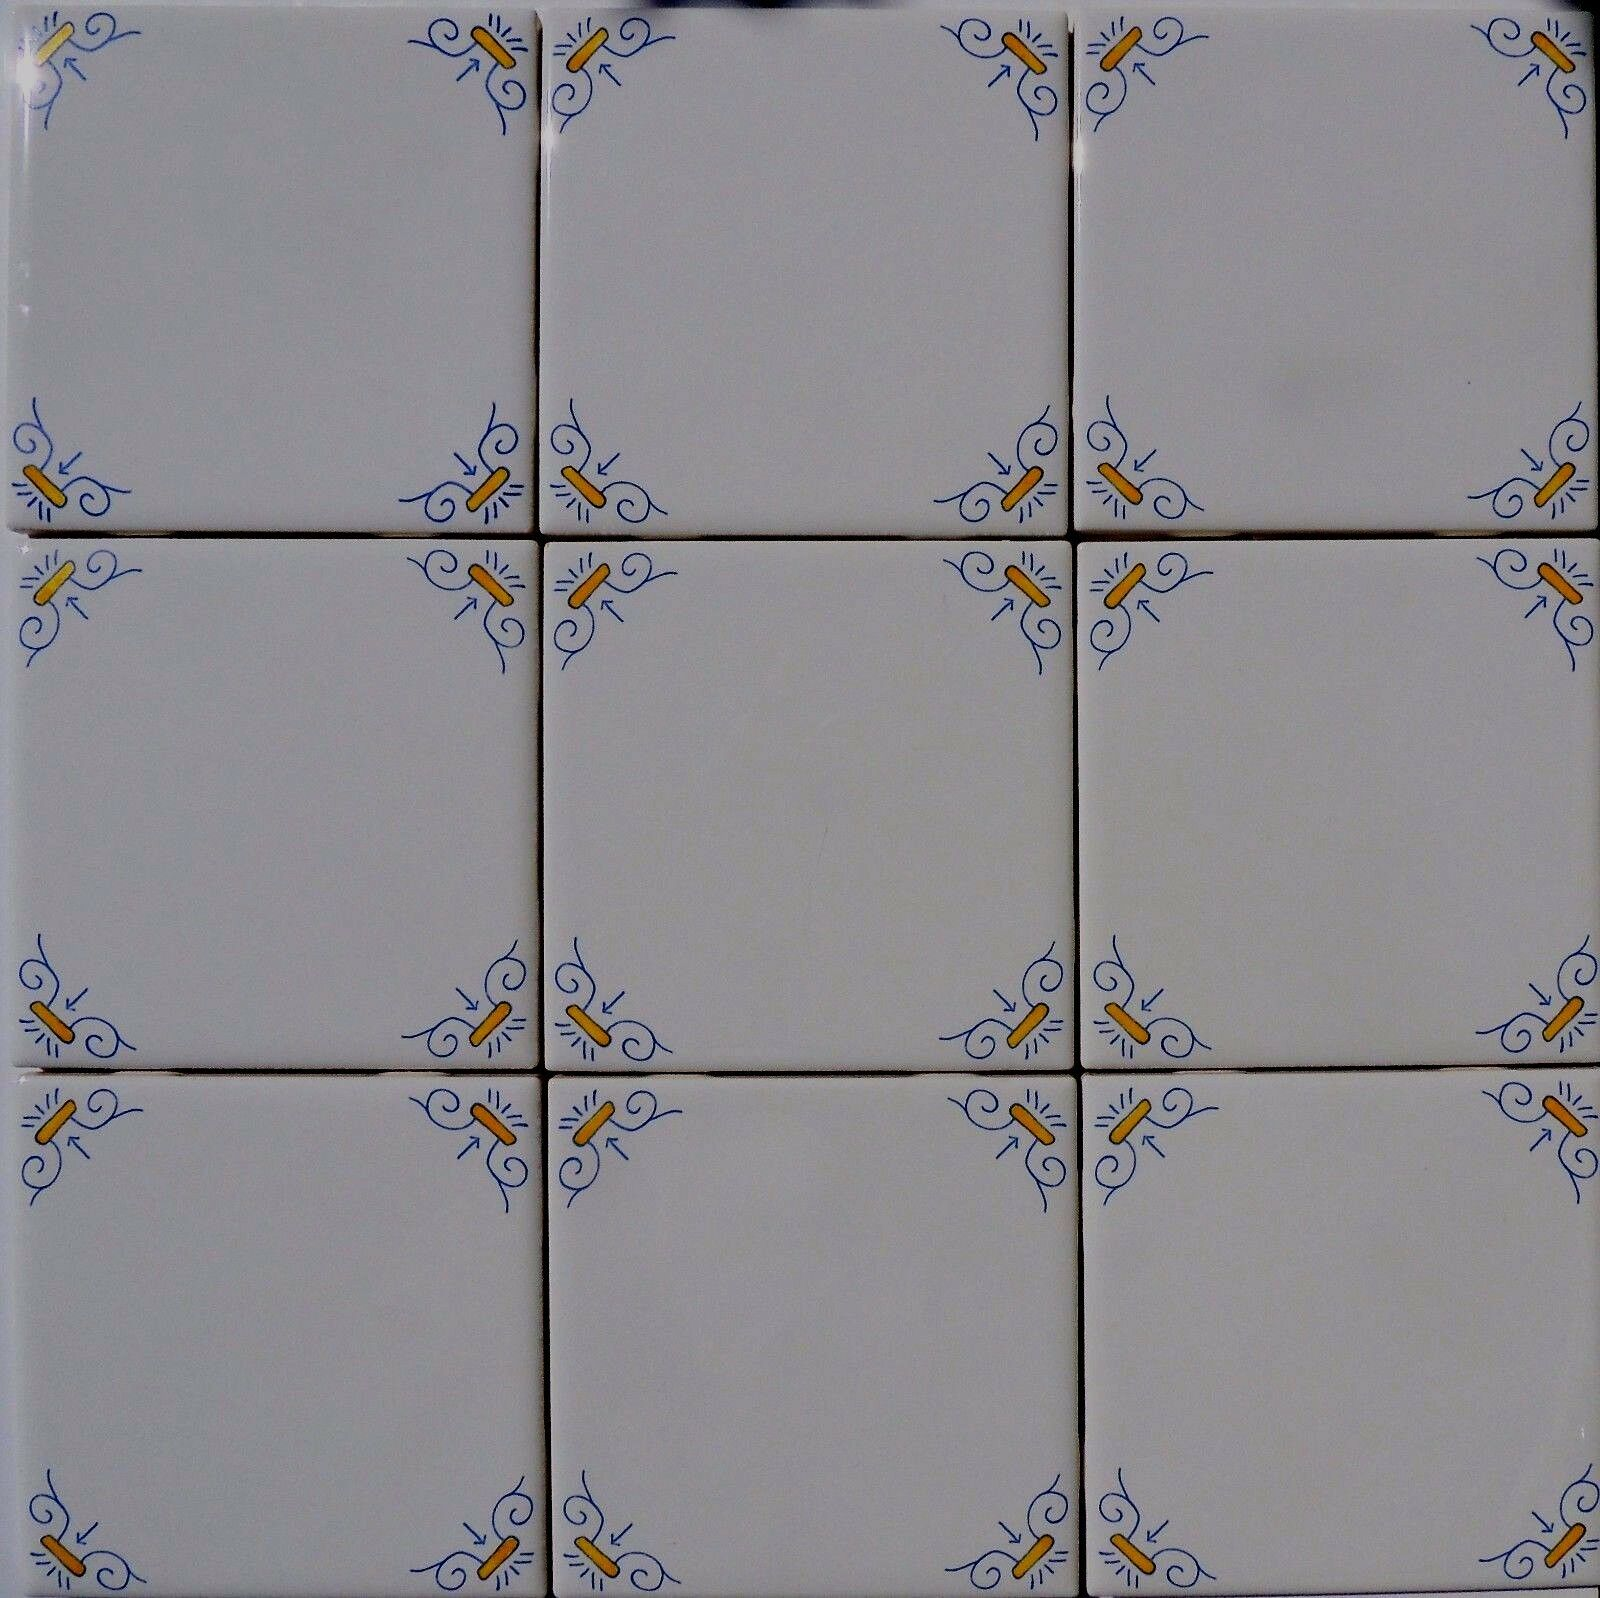 Delft Style Wall Tiles Blau and Gelb Oxen Corners (4 S F)